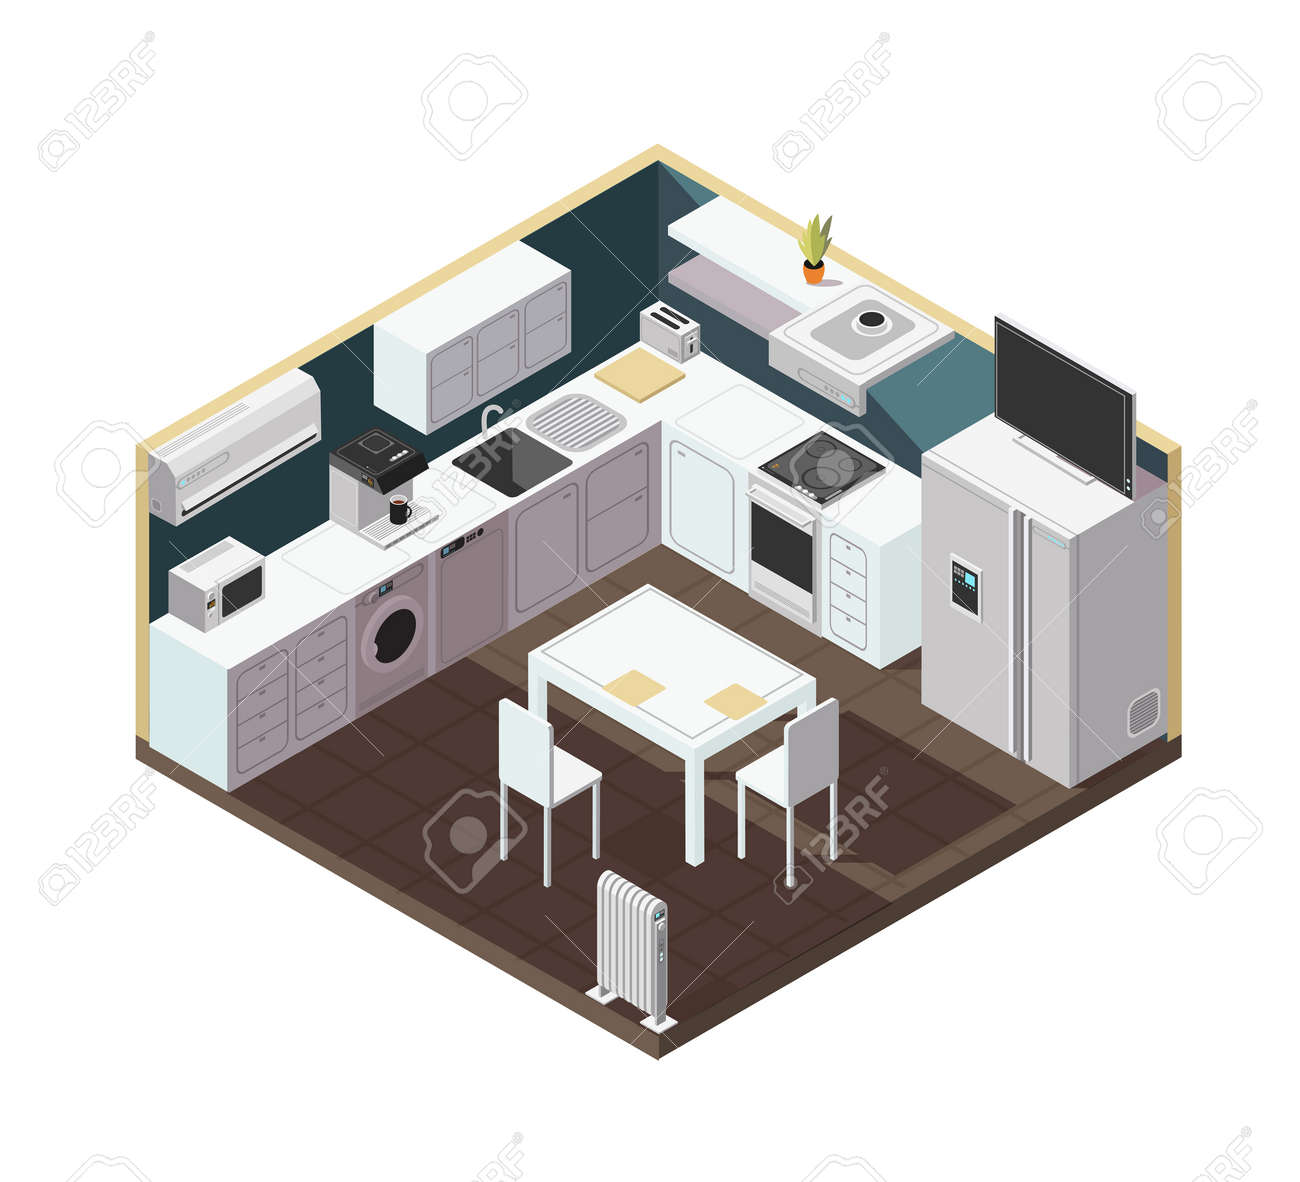 Isometric 3d kitchen interior with household appliance, equipment and furniture vector illustration. Kitchen and stove, household isometric equipment for cooking - 167441637